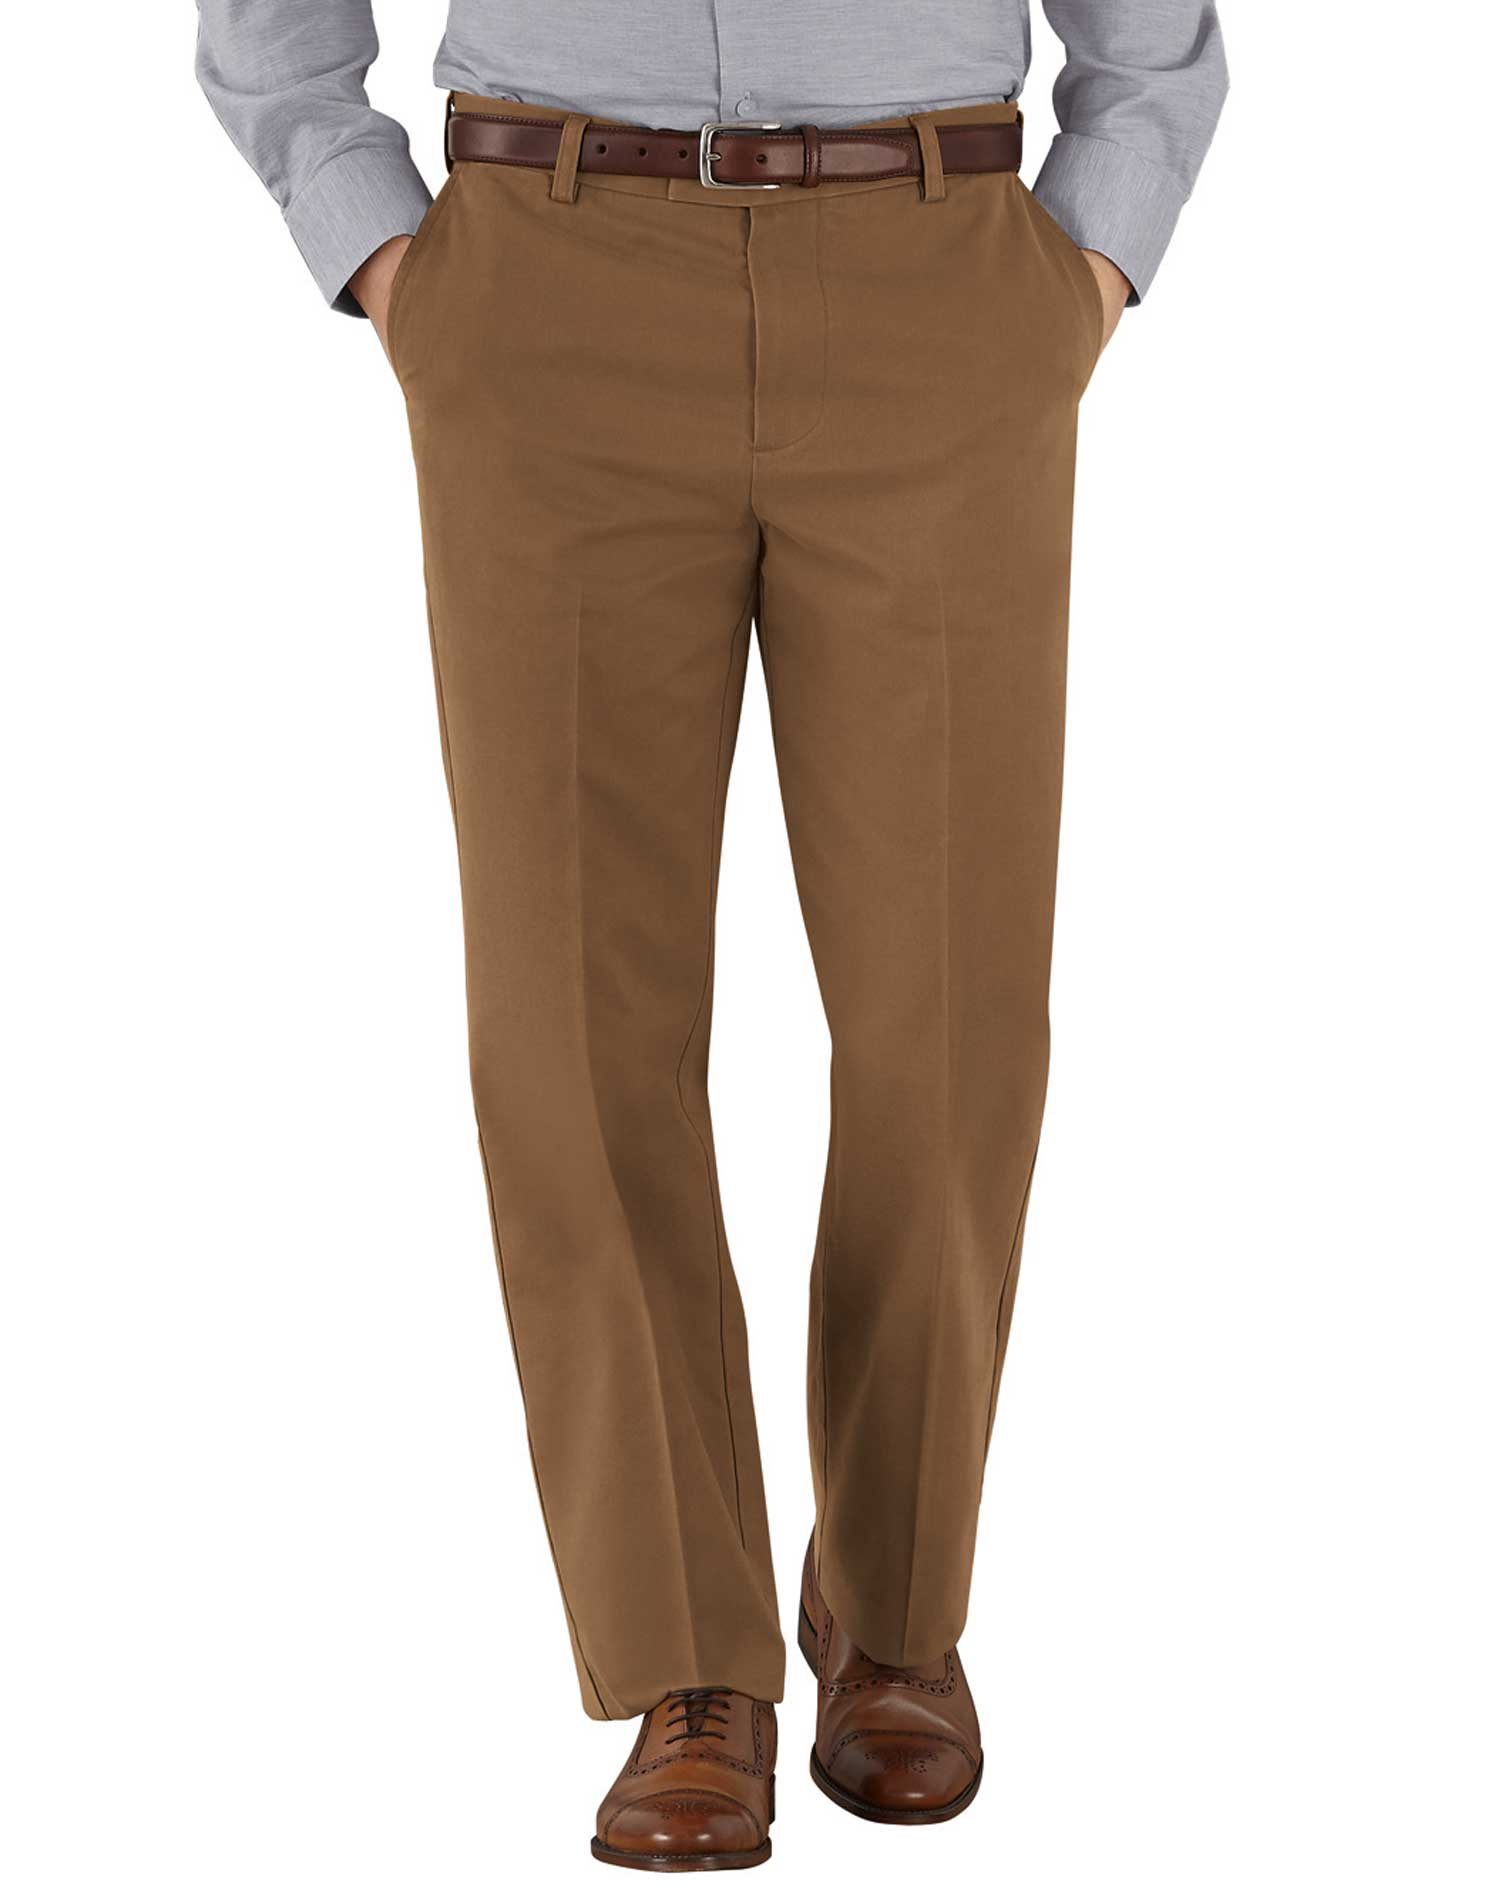 Camel Classic Fit Flat Front Non-Iron Cotton Chino Trousers Size W36 L30 by Charles Tyrwhitt